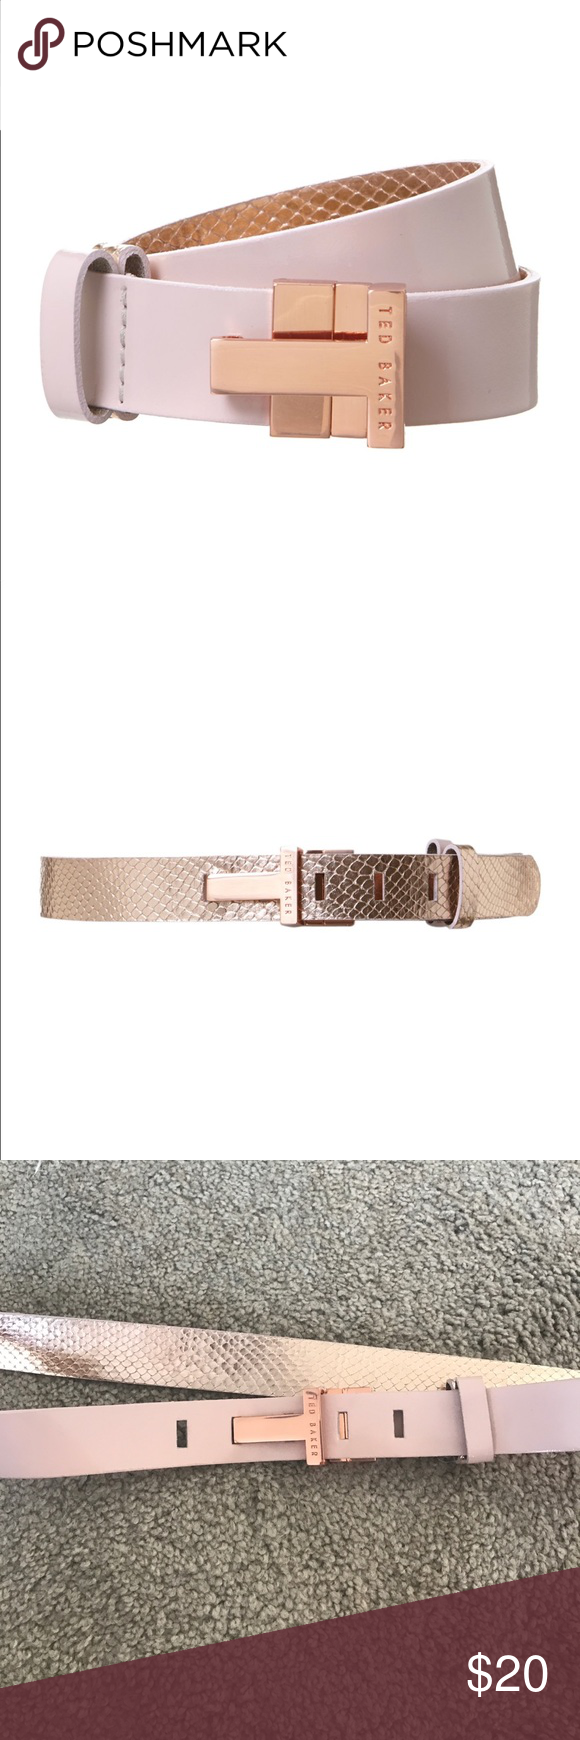 Ted baker reversible belt In great condition reversible ted baker belt. Full length 42 inches Ted Baker Accessories Belts